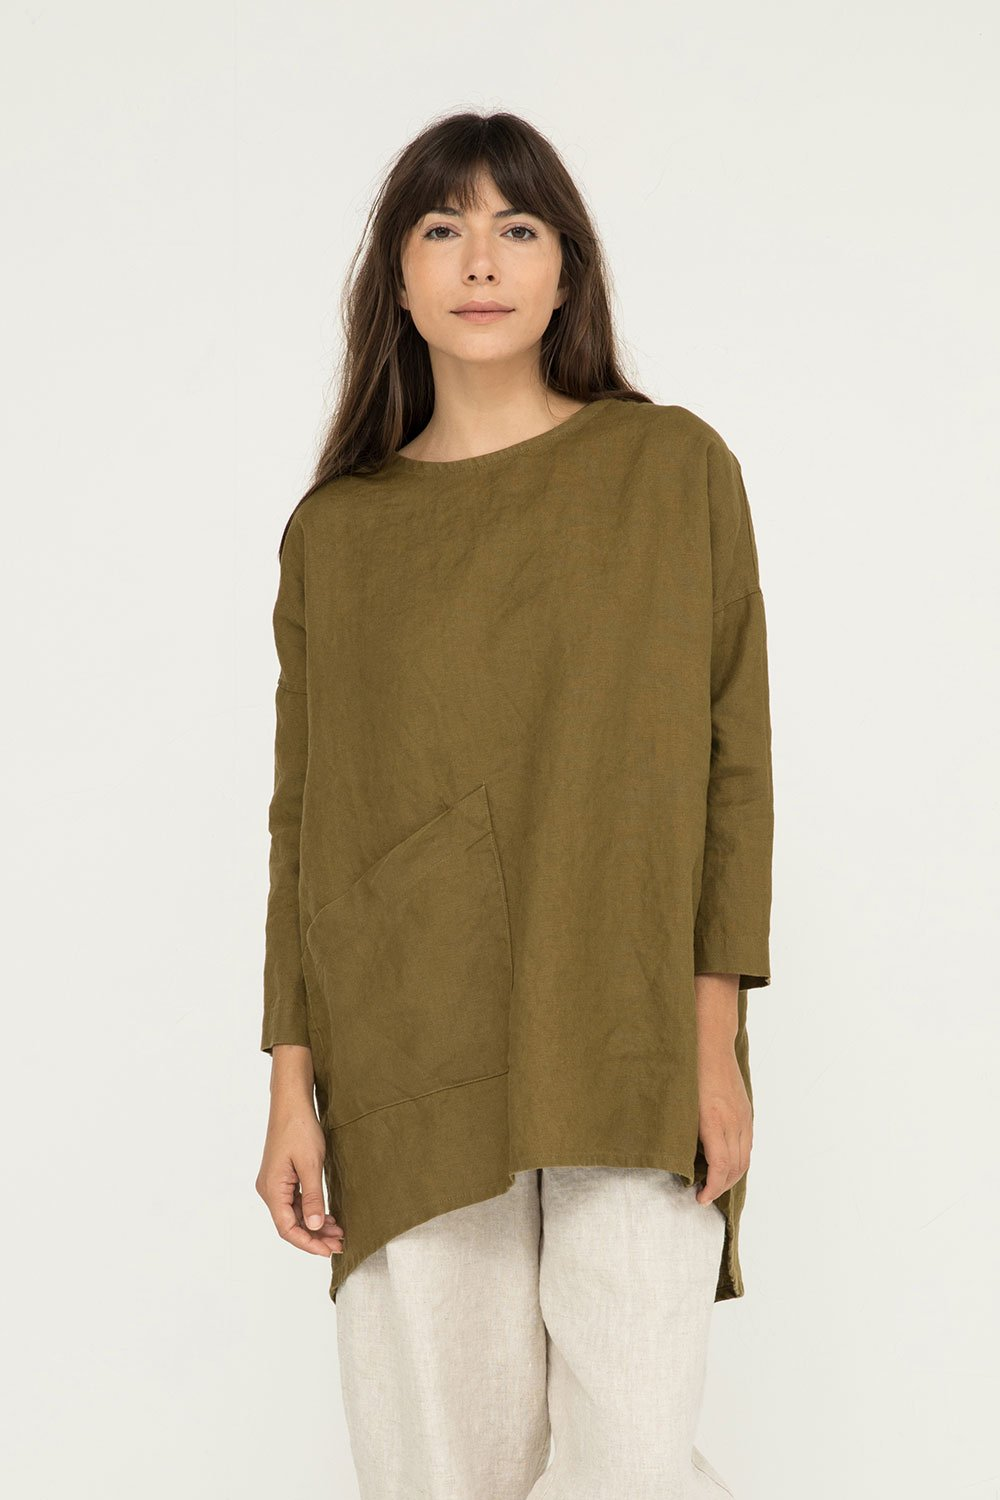 Long Sleeve Harper Tunic in Olive by Elizabeth Suzann